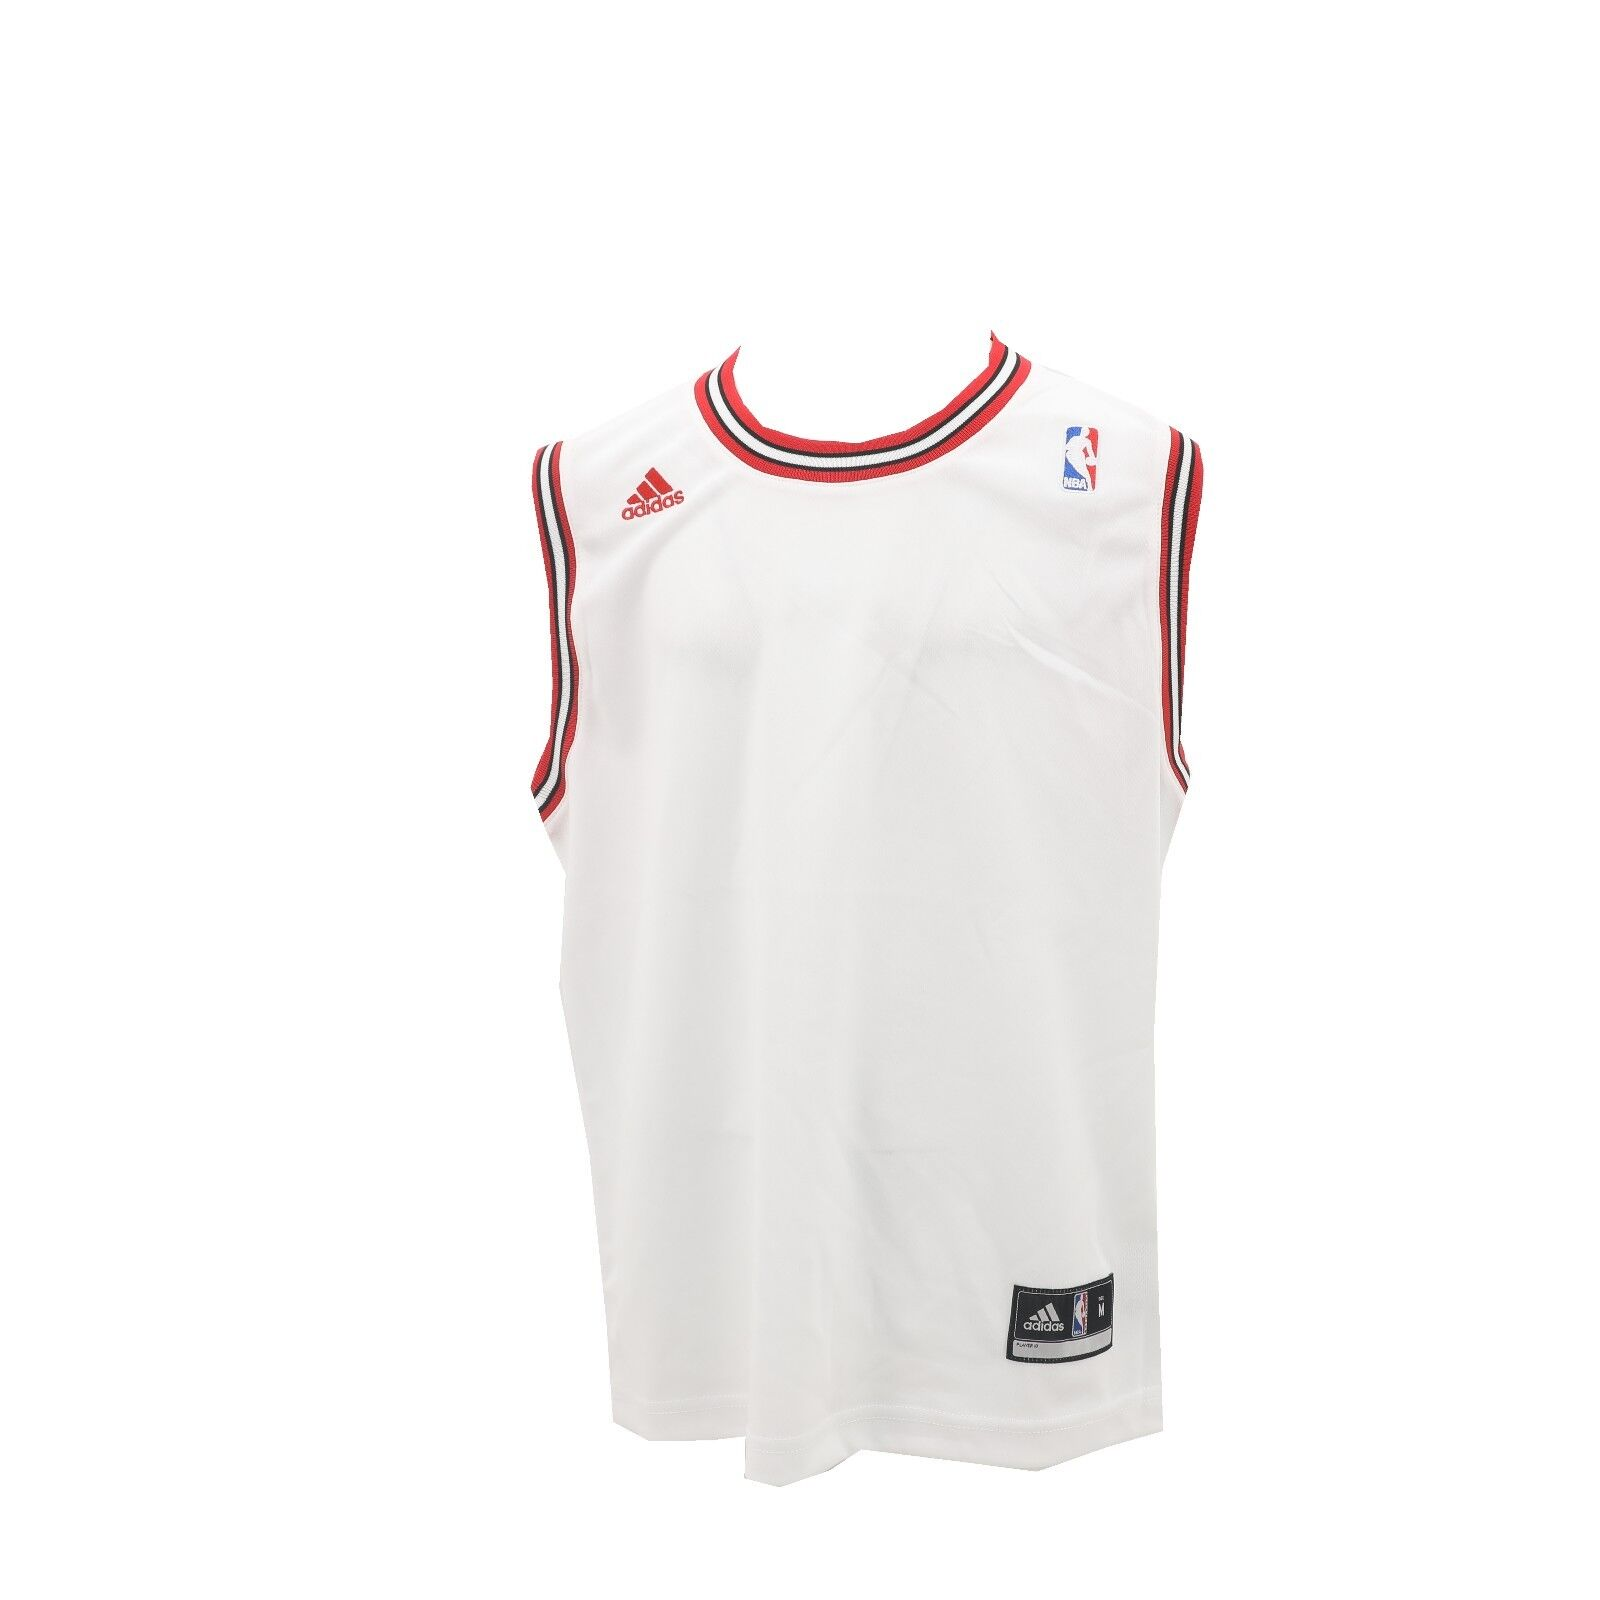 1bdc1640a67 Chicago Bulls Kids Youth Size NBA Official Adidas Blank Practice Jersey New  Tags